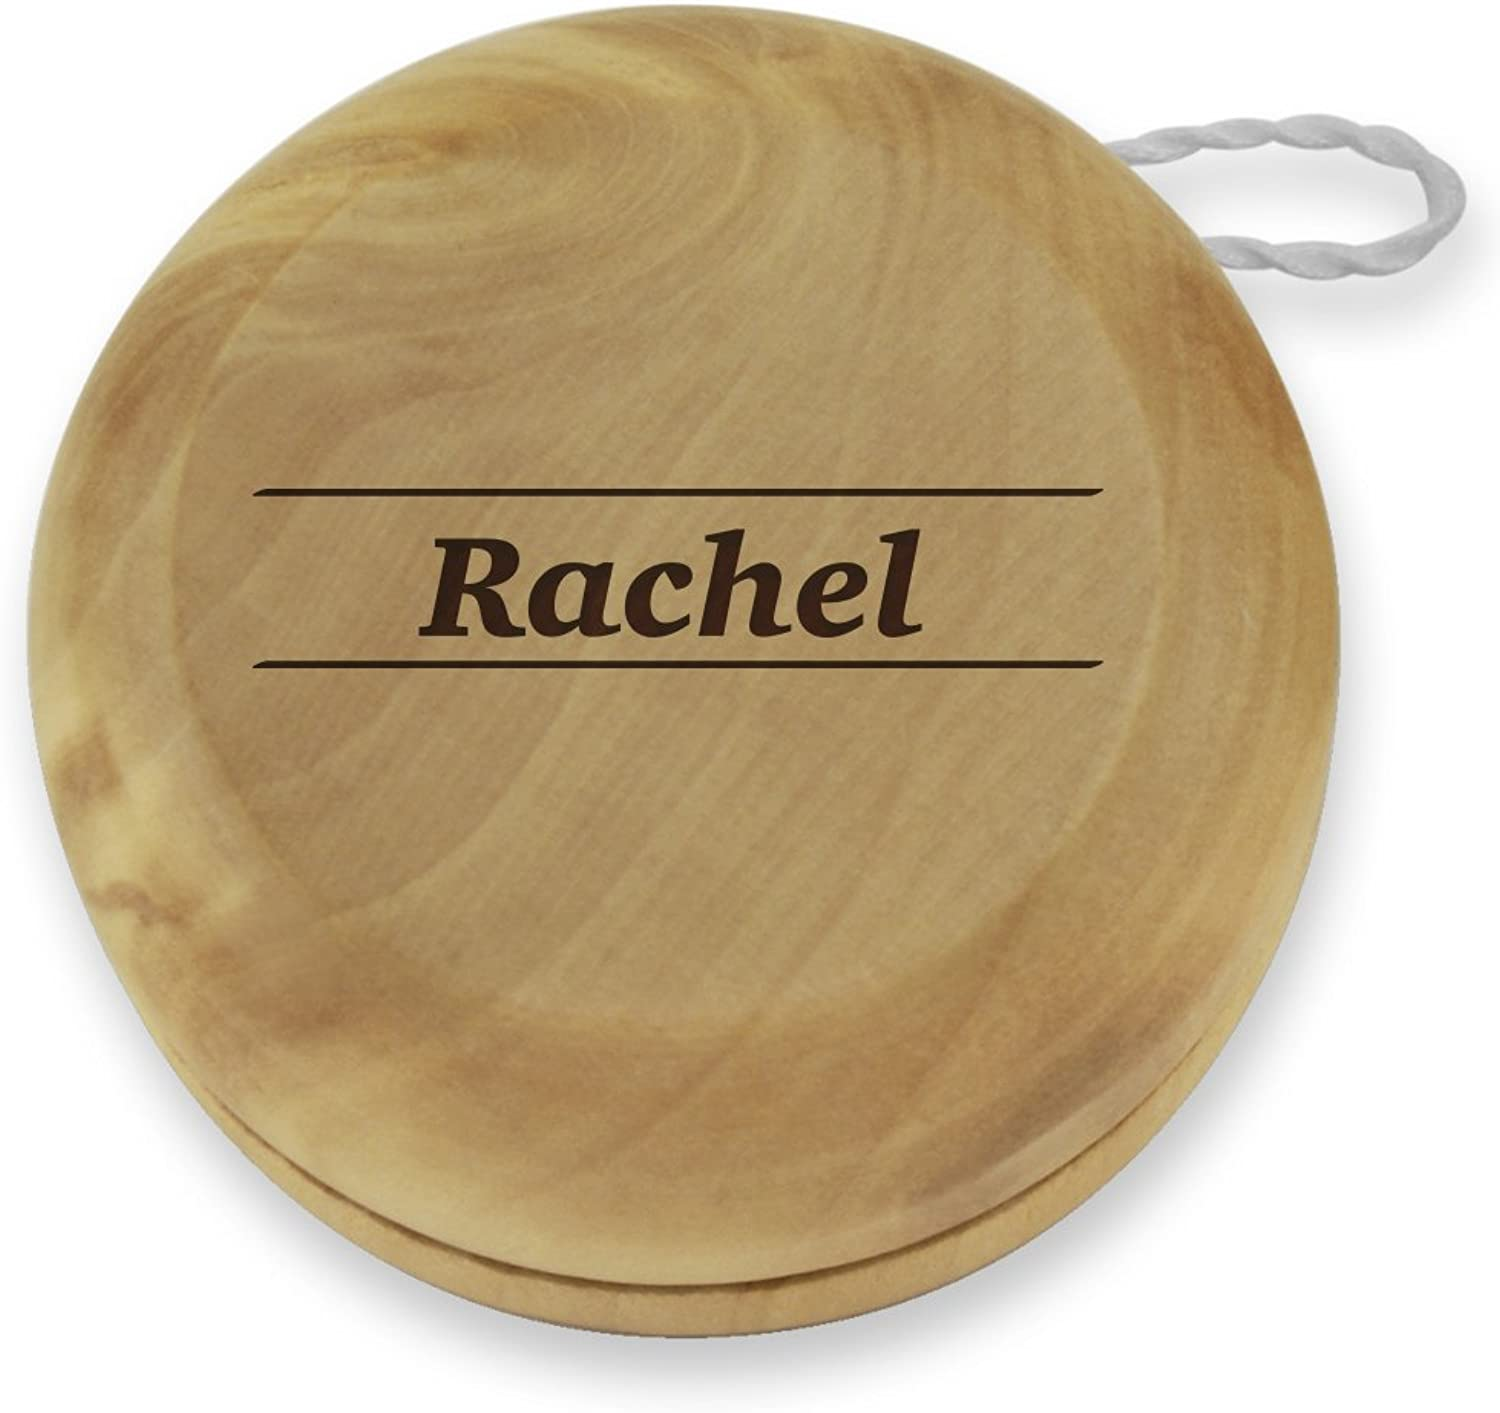 Dimension 9 Rachel Classic Wood Yoyo with Laser Engraving